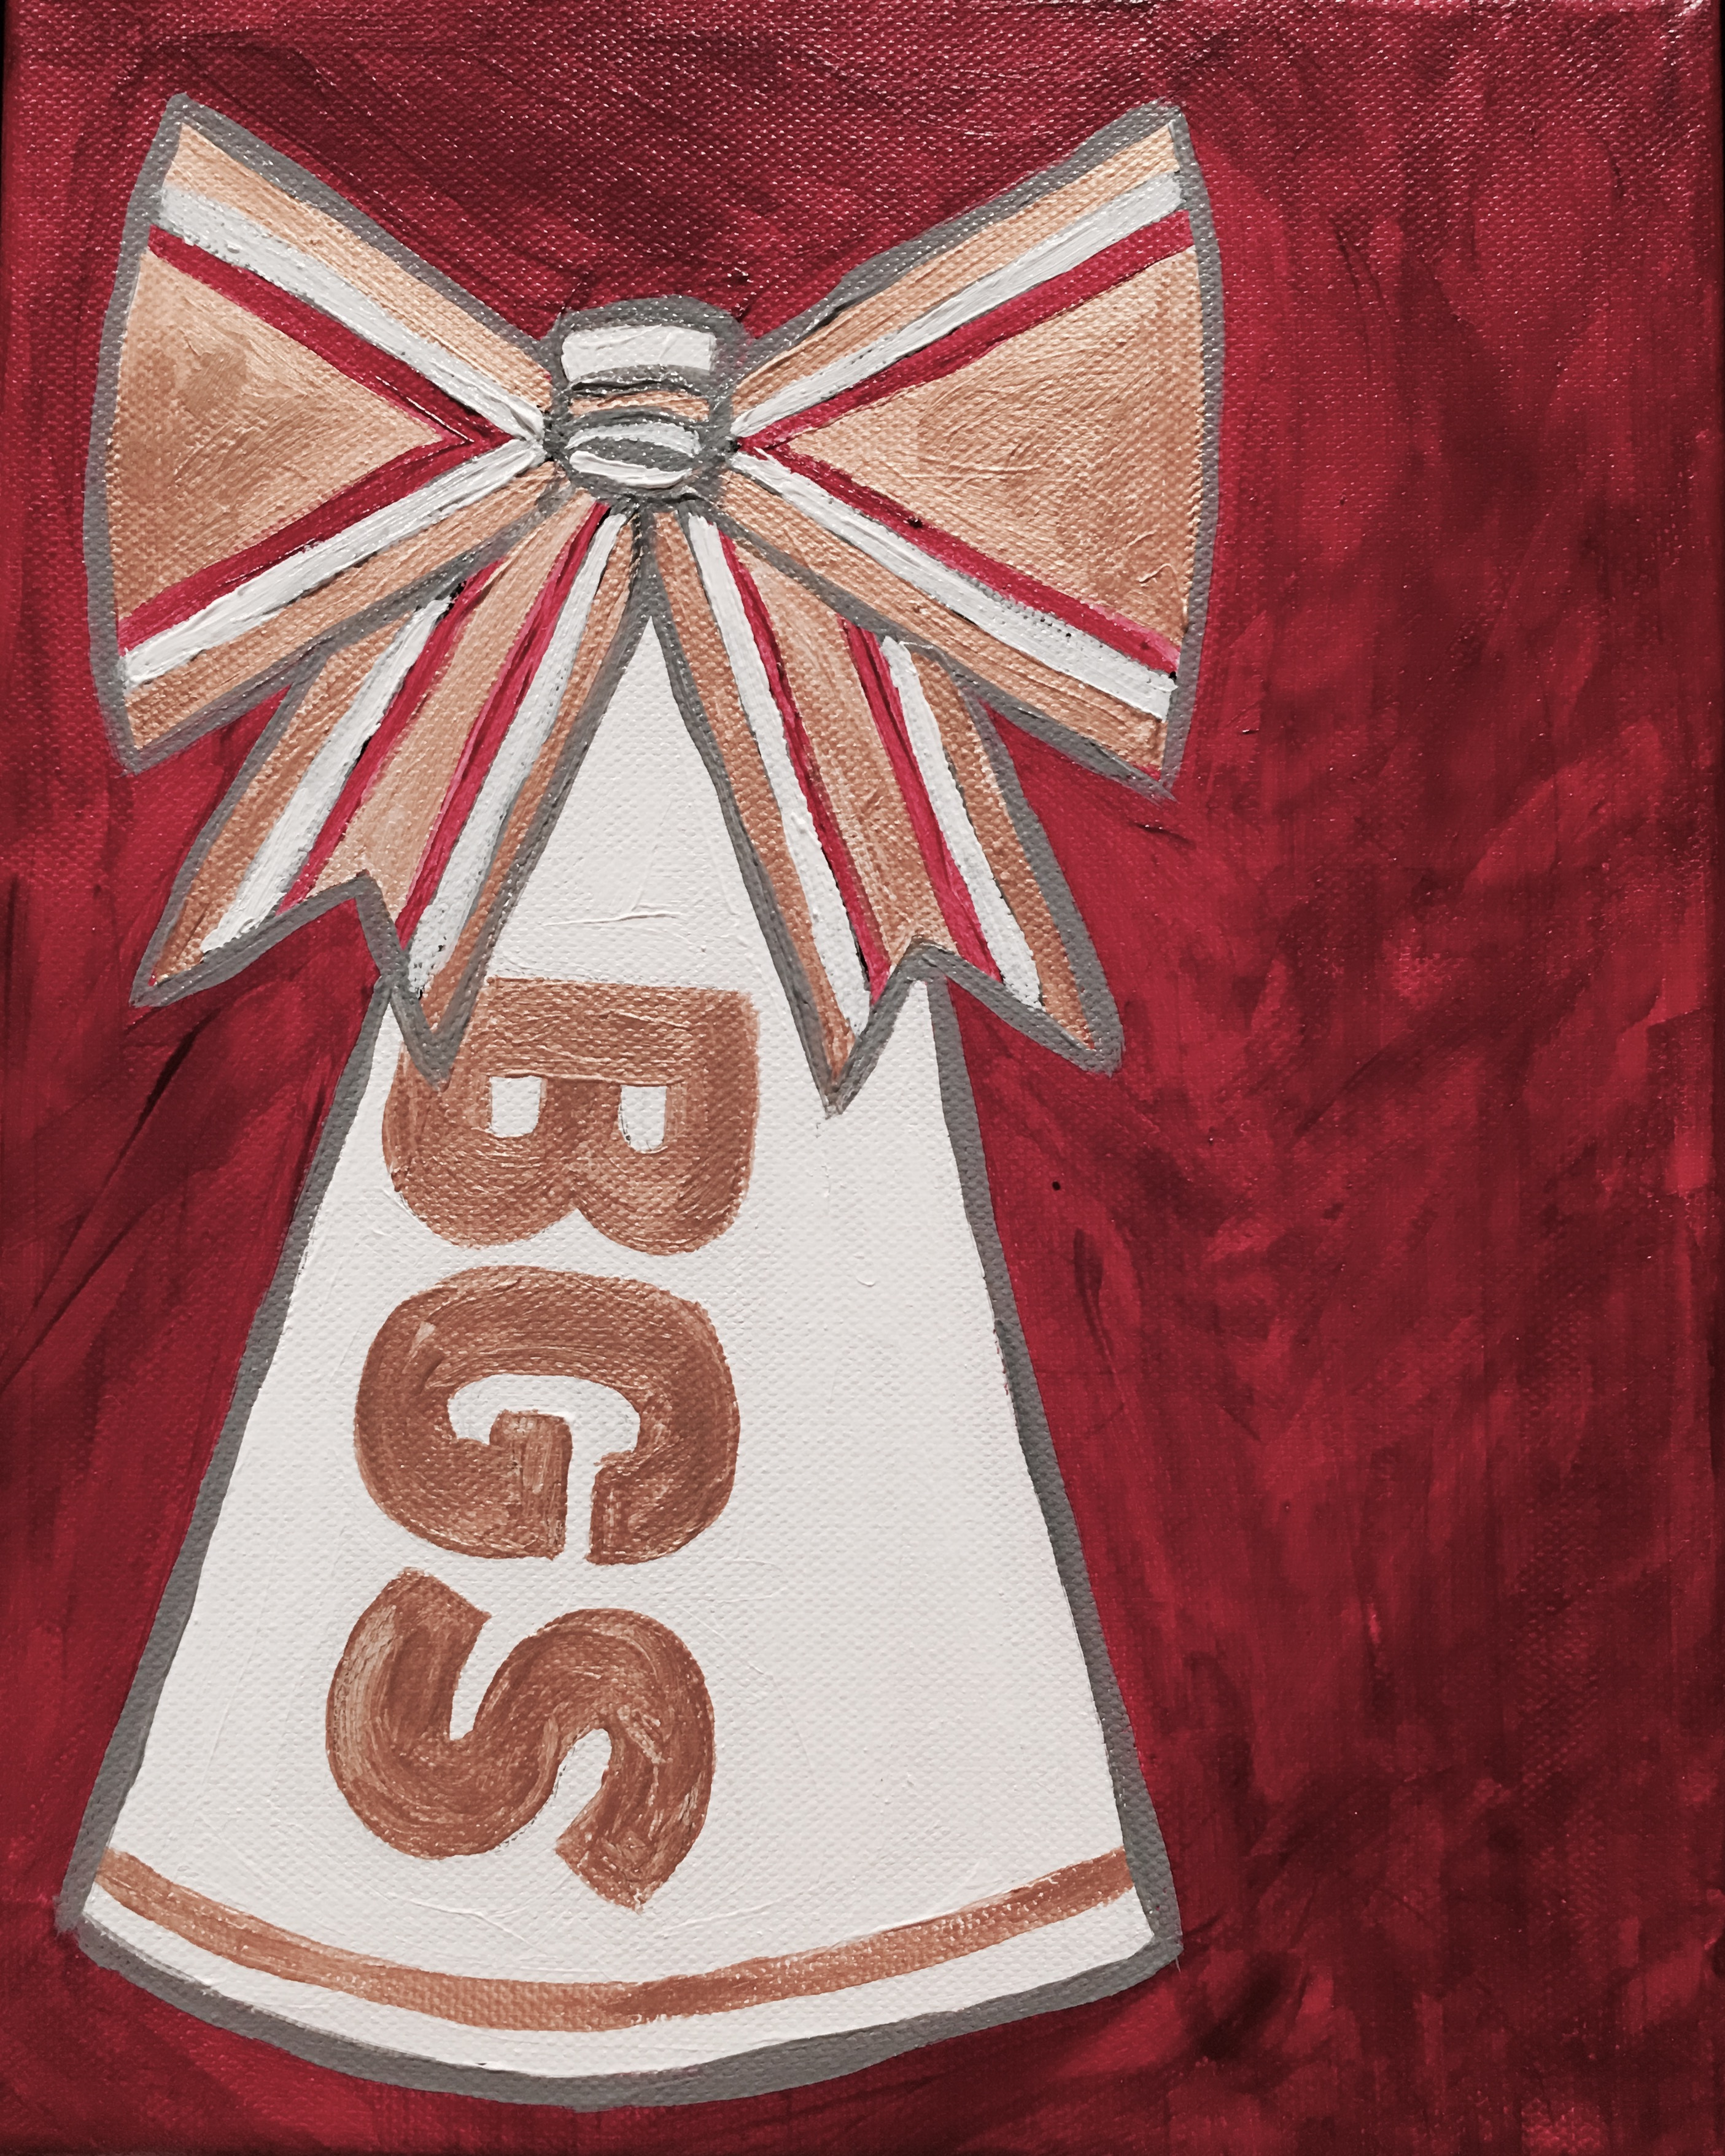 cheer megaphone and bow